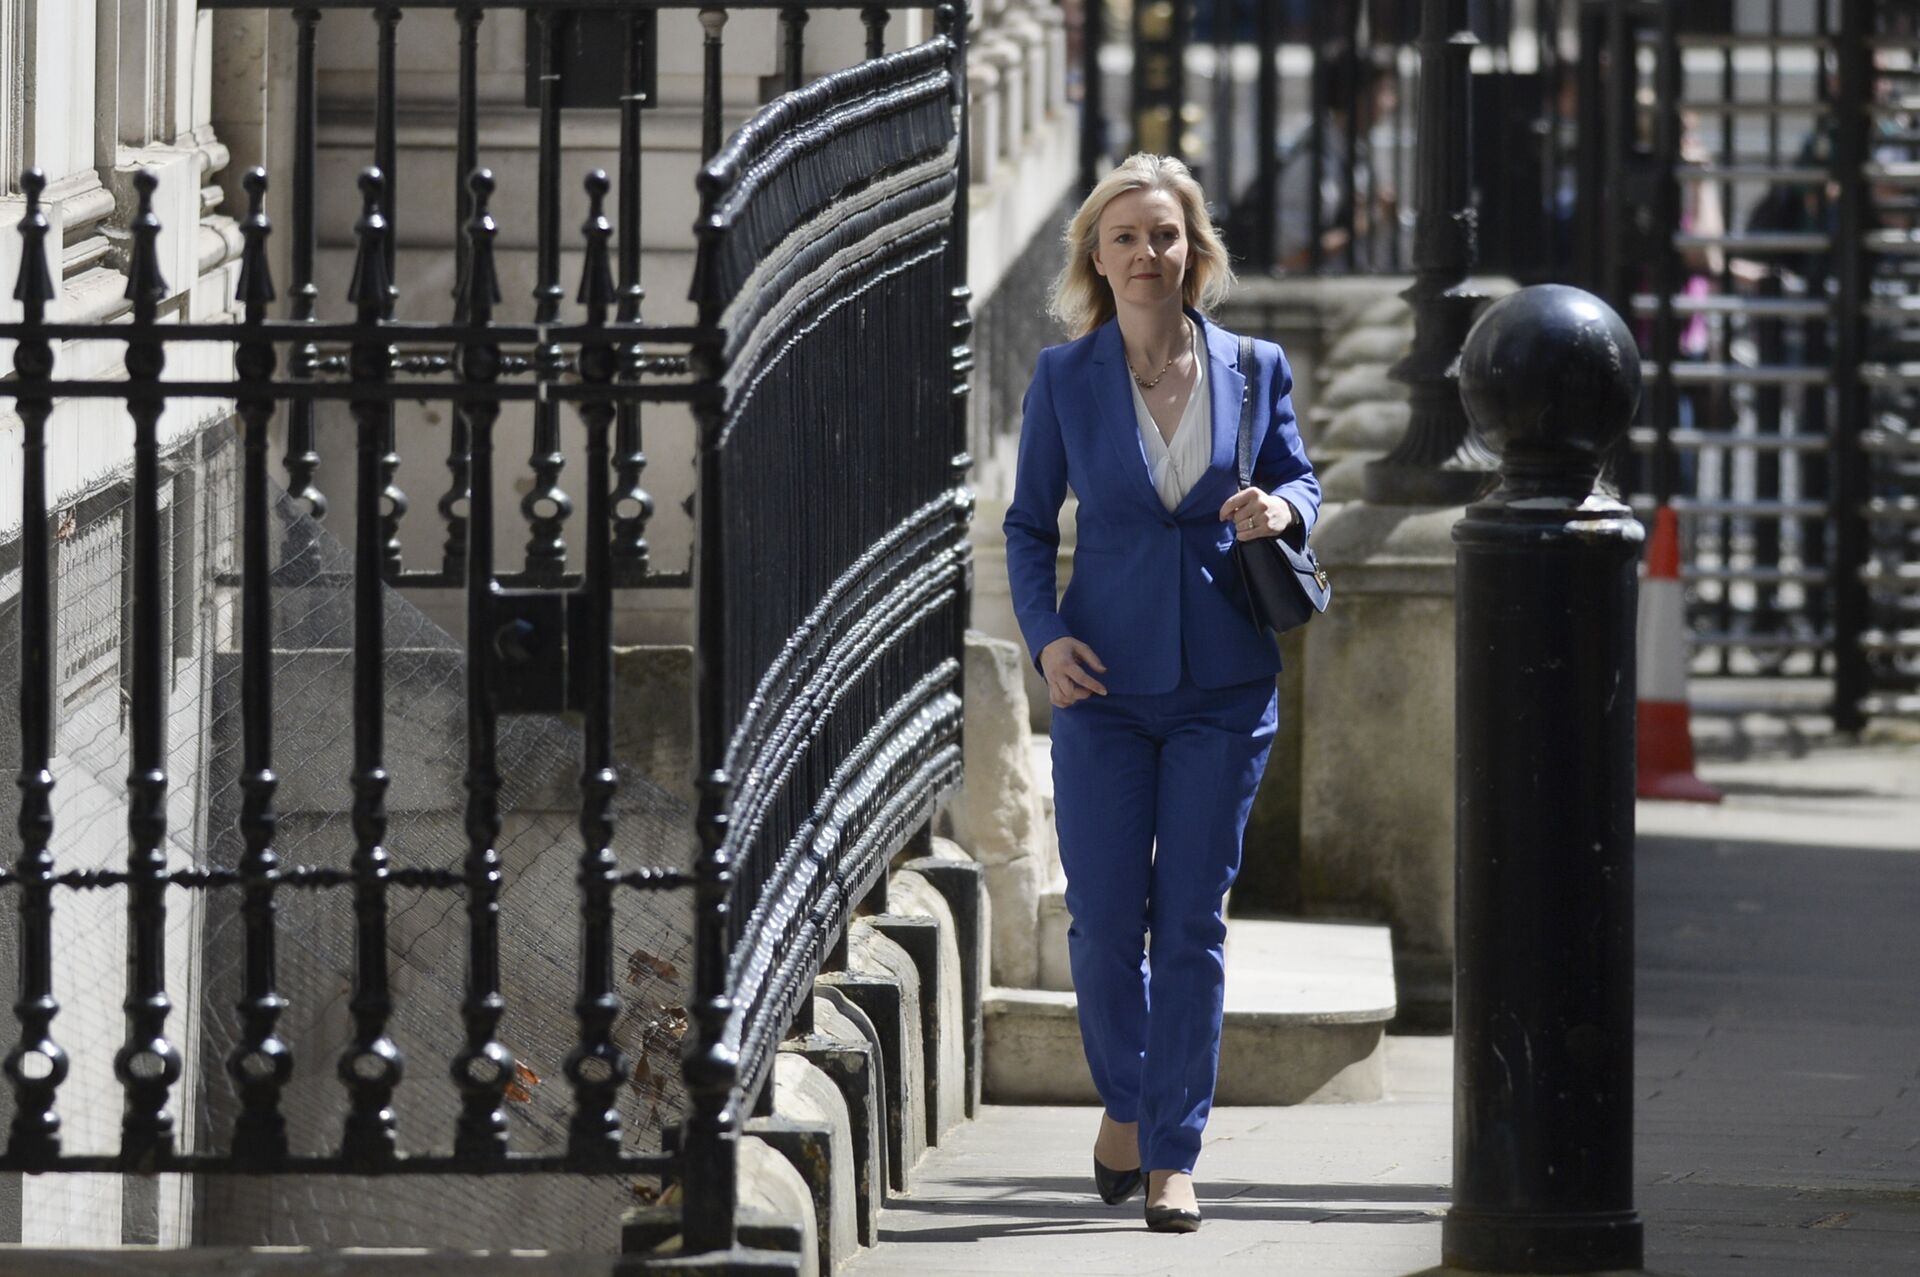 Conservative politician Liz Truss, who served as Environment Secretary under David Cameron, arrives at 10 Downing Street in central London on July 14, 2016 as cabinet appointments by new prime minister Theresa May are expected on her first full day in office - Sputnik International, 1920, 16.09.2021